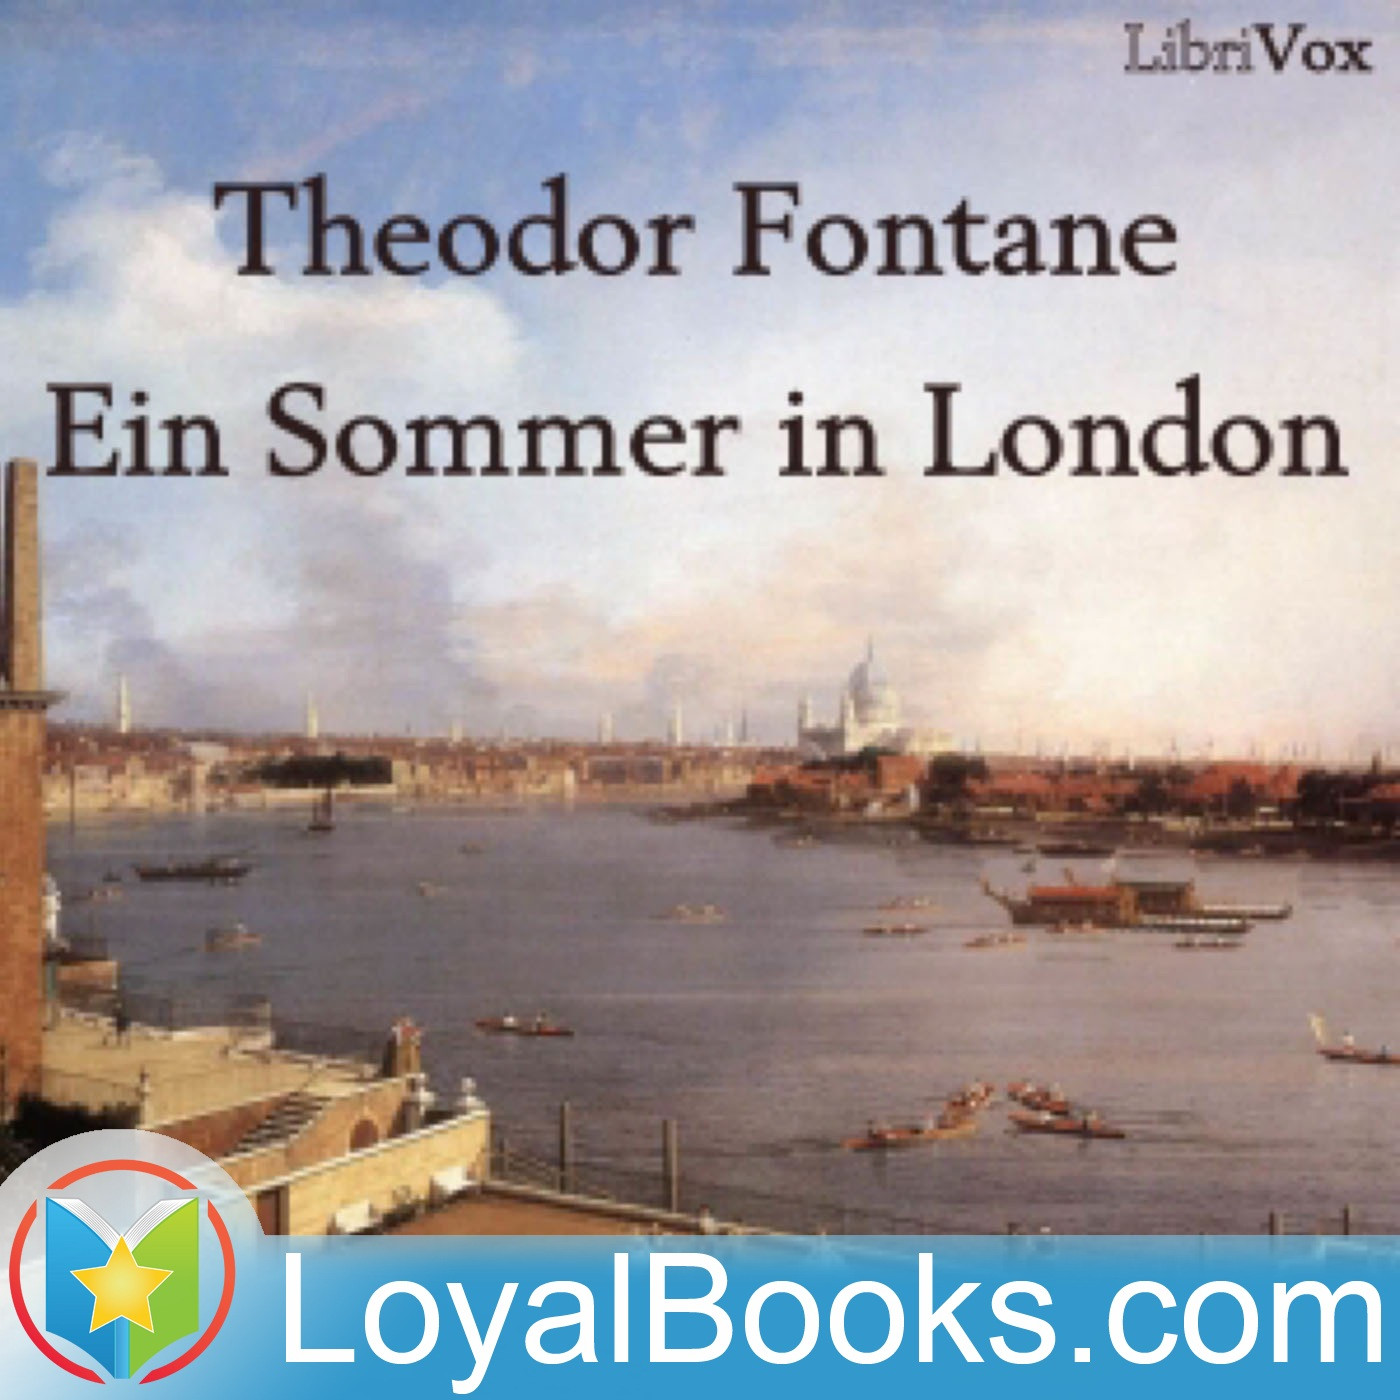 <![CDATA[Ein Sommer in London by Theodor Fontane]]>